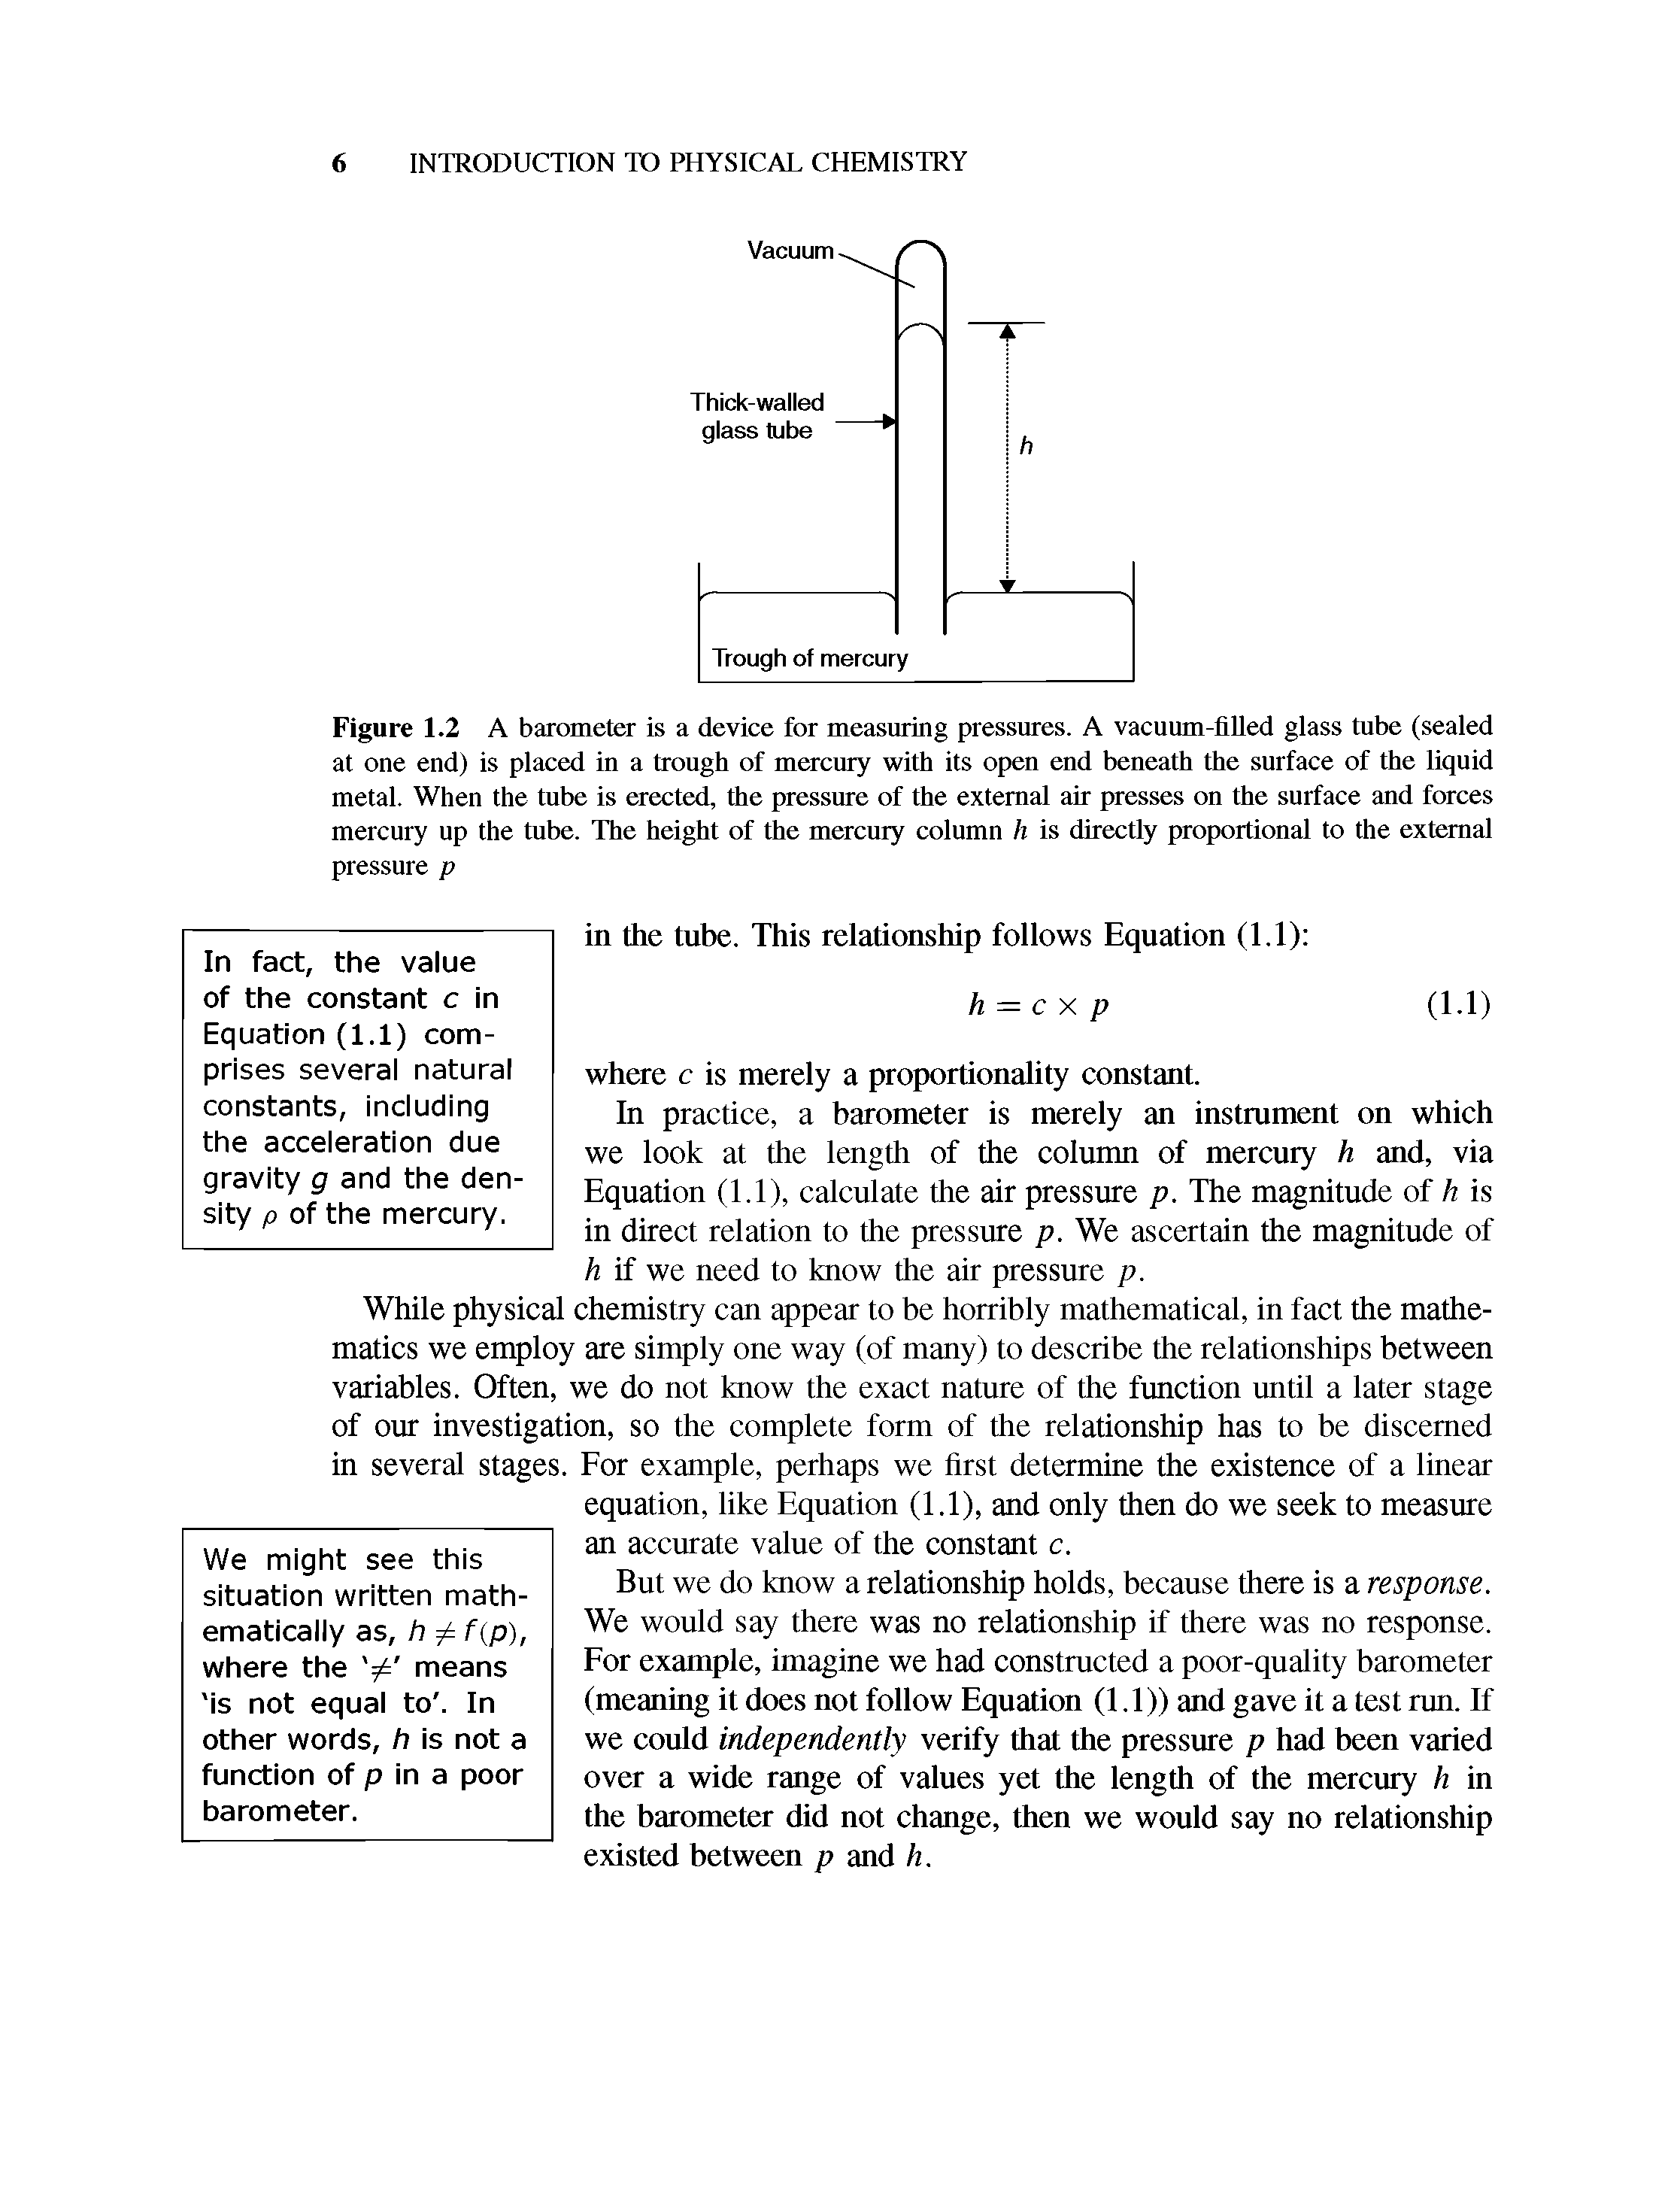 "Figure 1.2 A barometer is a device for <a href=""/info/pressure_measurements"">measuring pressures</a>. A vacuum-<a href=""/info/pet_glass_filled"">filled glass</a> tube (sealed at one end) is placed in a trough of <a href=""/info/with_air_mercury"">mercury with</a> its open end beneath the surface of the <a href=""/info/liquid_metals"">liquid metal</a>. When the tube is erected, the pressure of the external air presses on the surface and forces mercury up the tube. The height of the <a href=""/info/mercury_column"">mercury column</a> li is <a href=""/info/directly_proportional"">directly proportional</a> to the external pressure p"